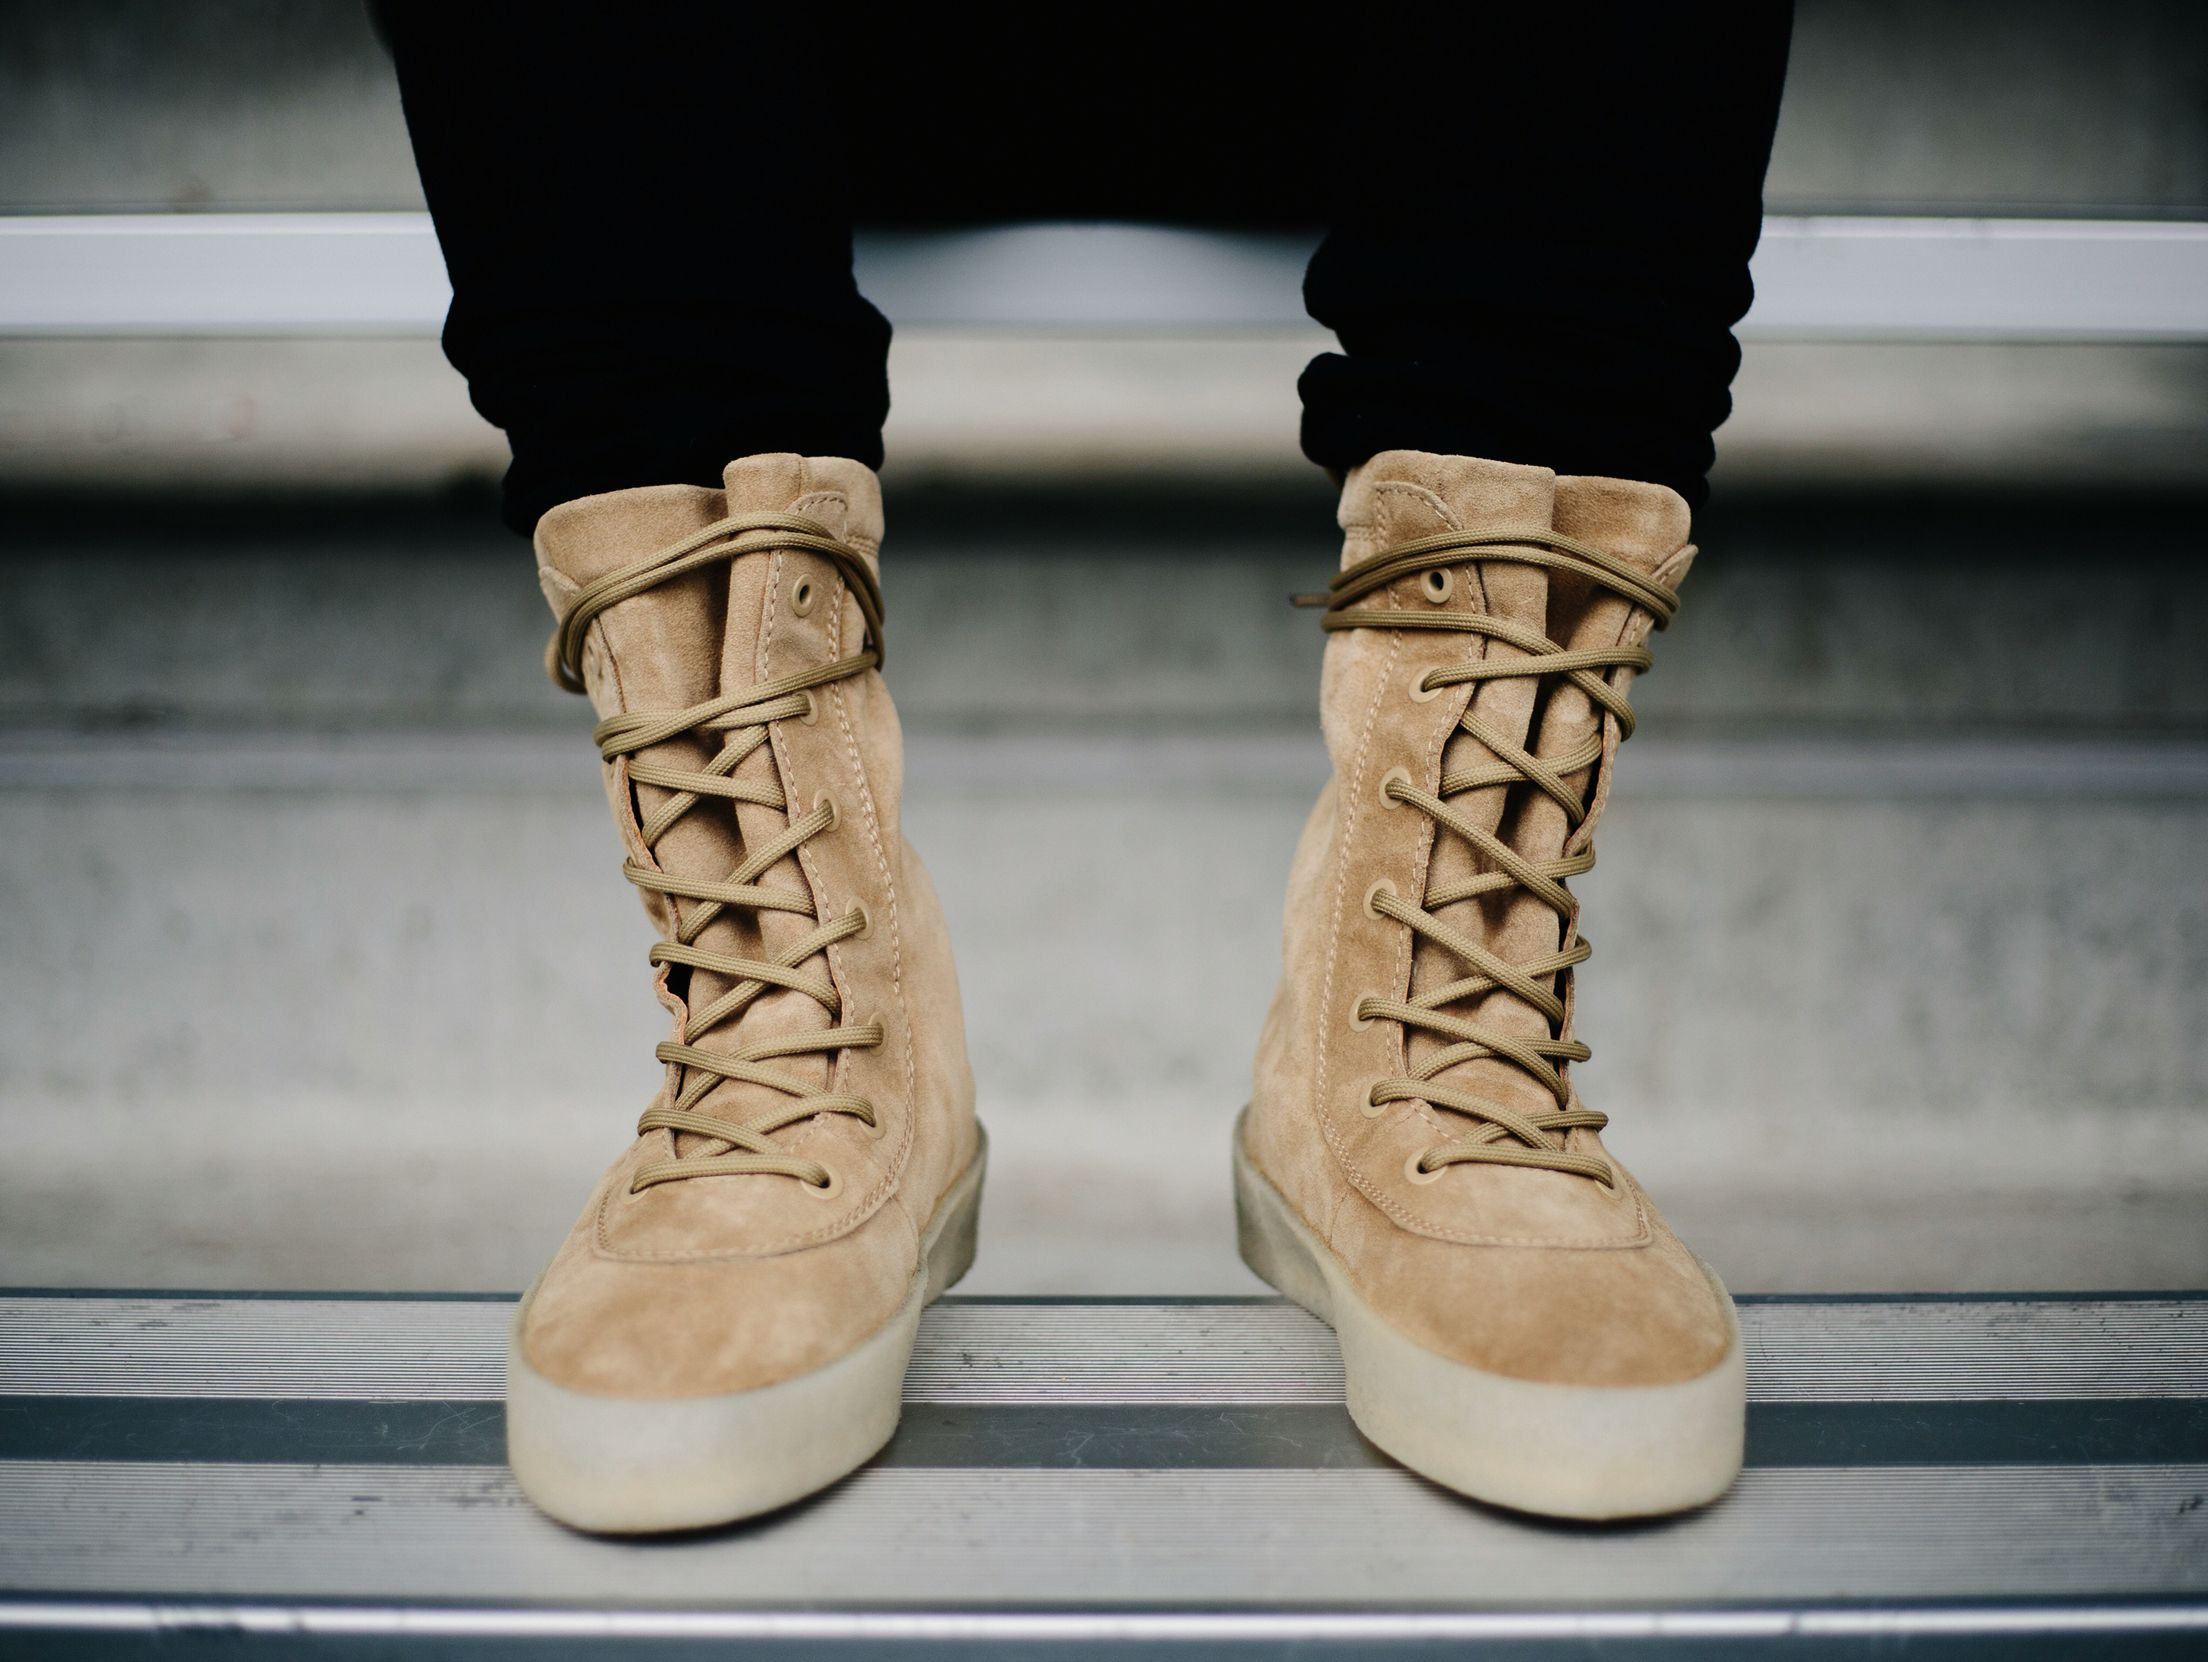 Yeezy Season 2 Crepe Boot X Yzy Szn 2 Currentlyjv